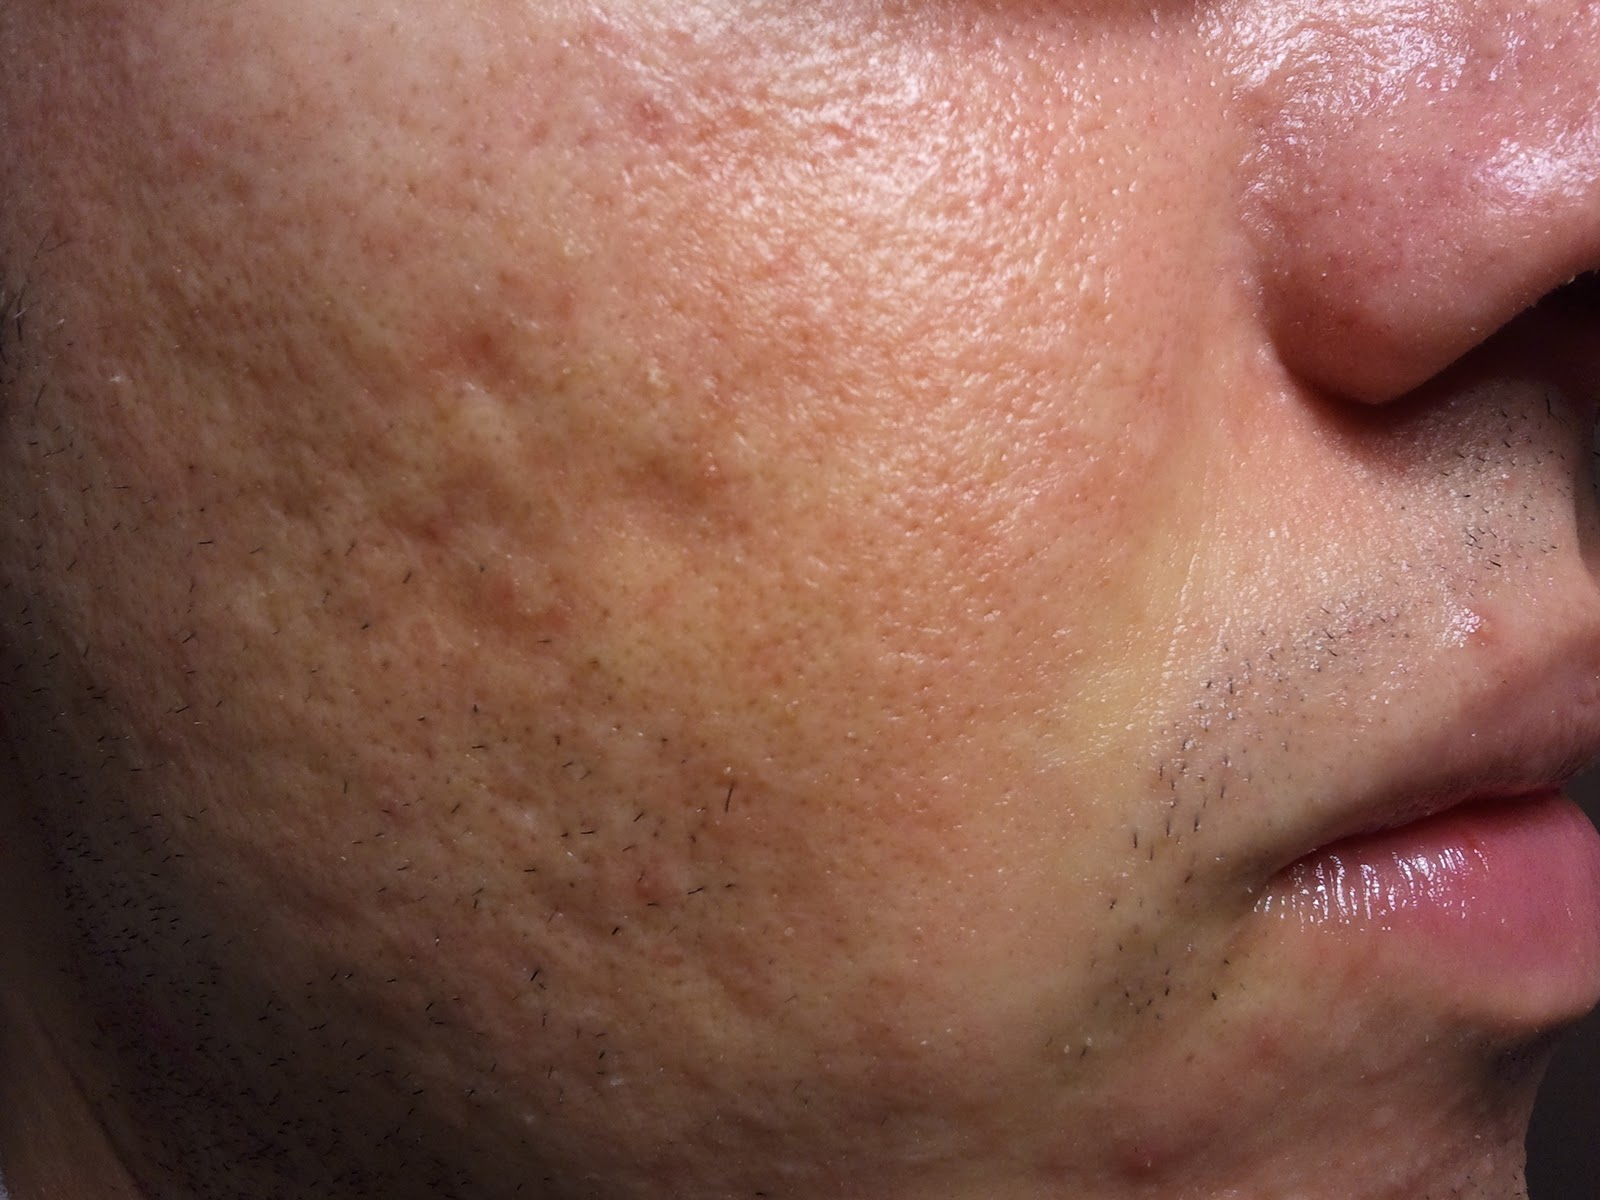 large pores on nose - photo #18